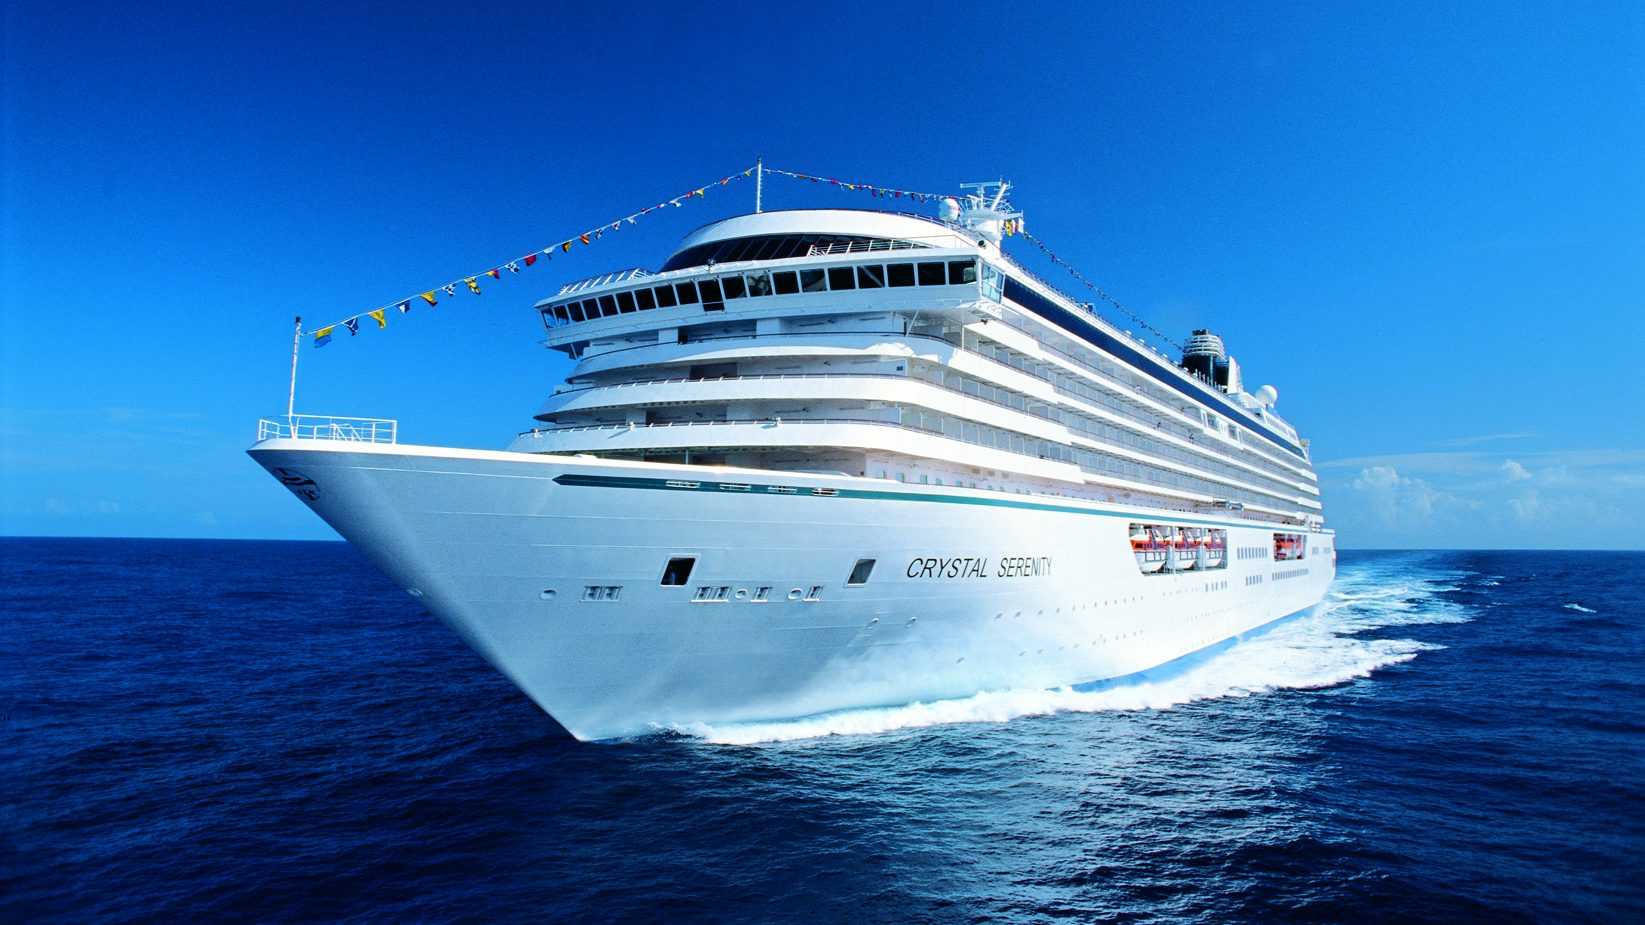 Crystal Serenity cruise ship will navigate Northwest Passage in Arctic Sea